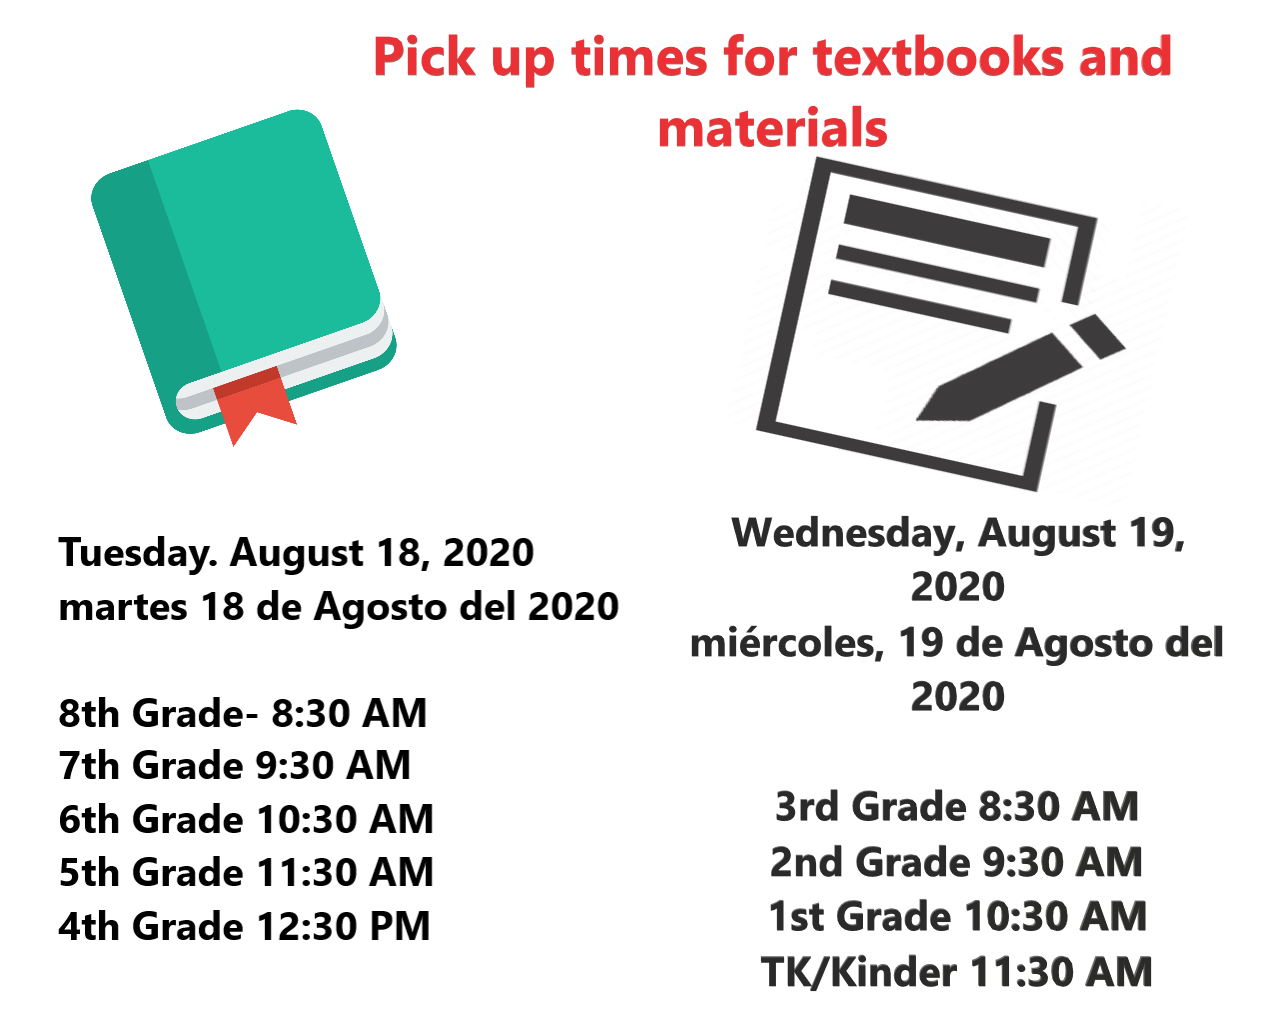 Pick up times for textbooks and other materials